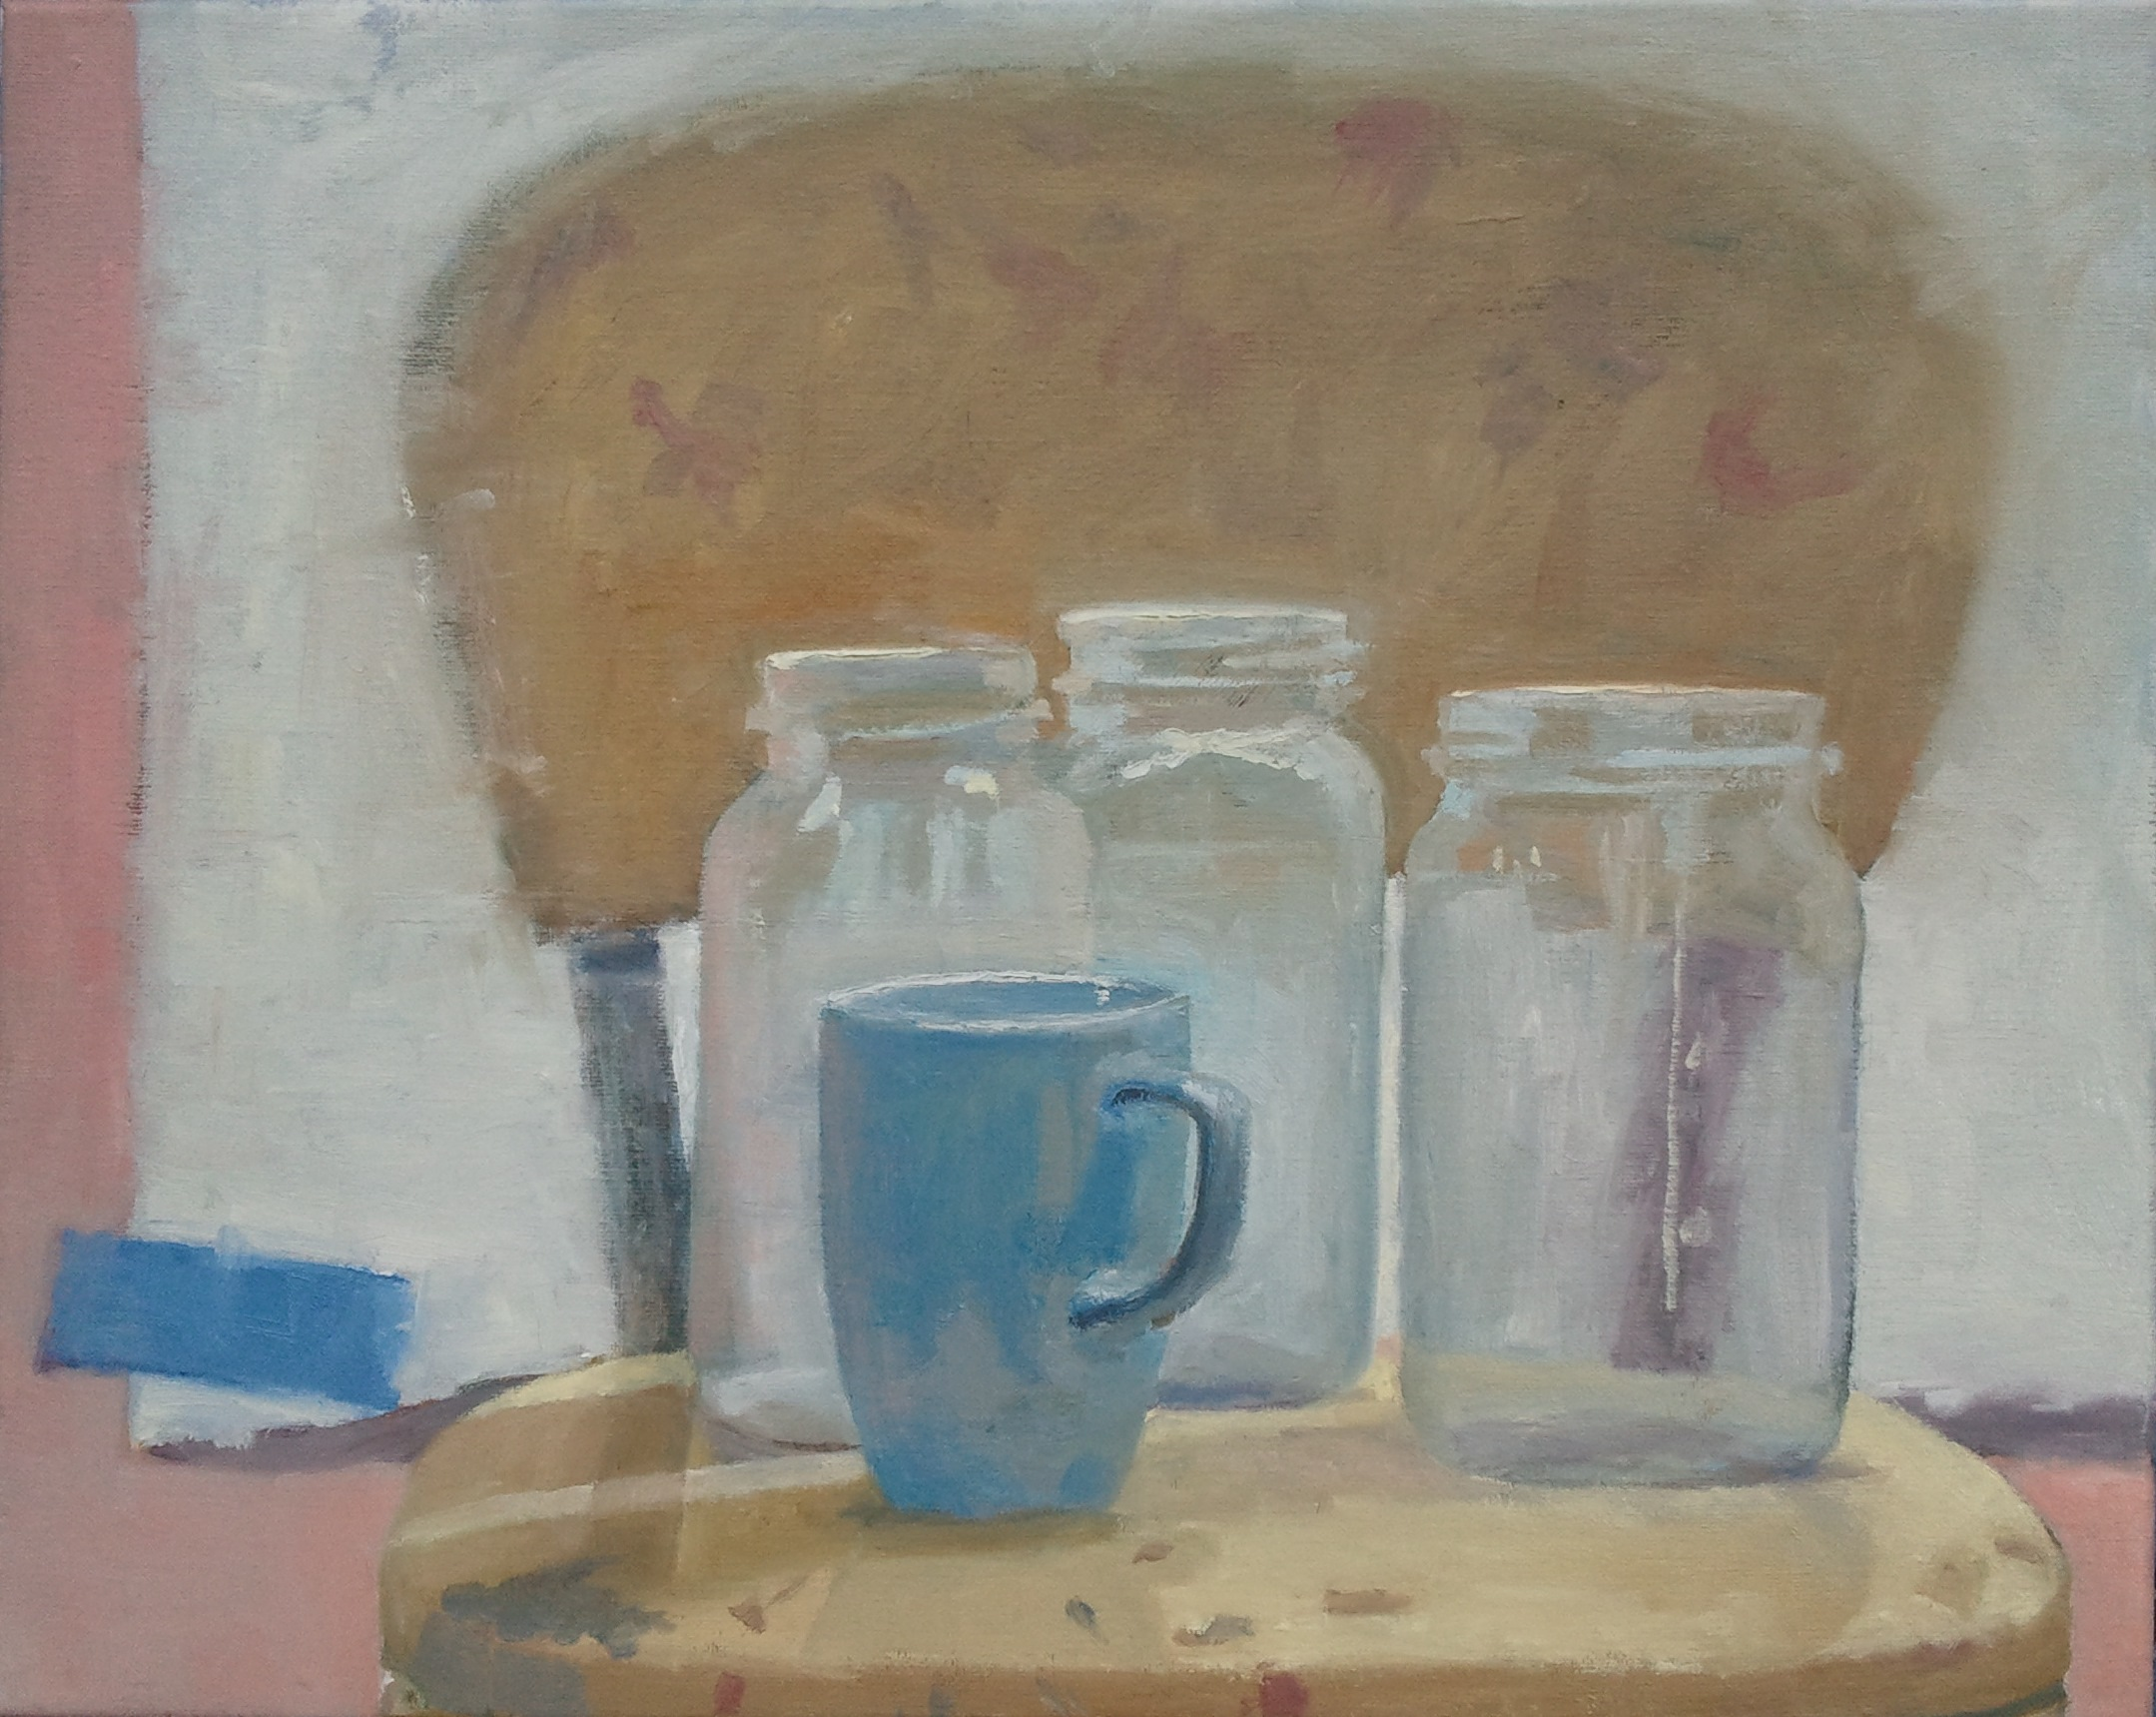 """""""Still Life with Jars, Mug and Blue Tape,"""" 16""""x20"""", oil on canvas."""